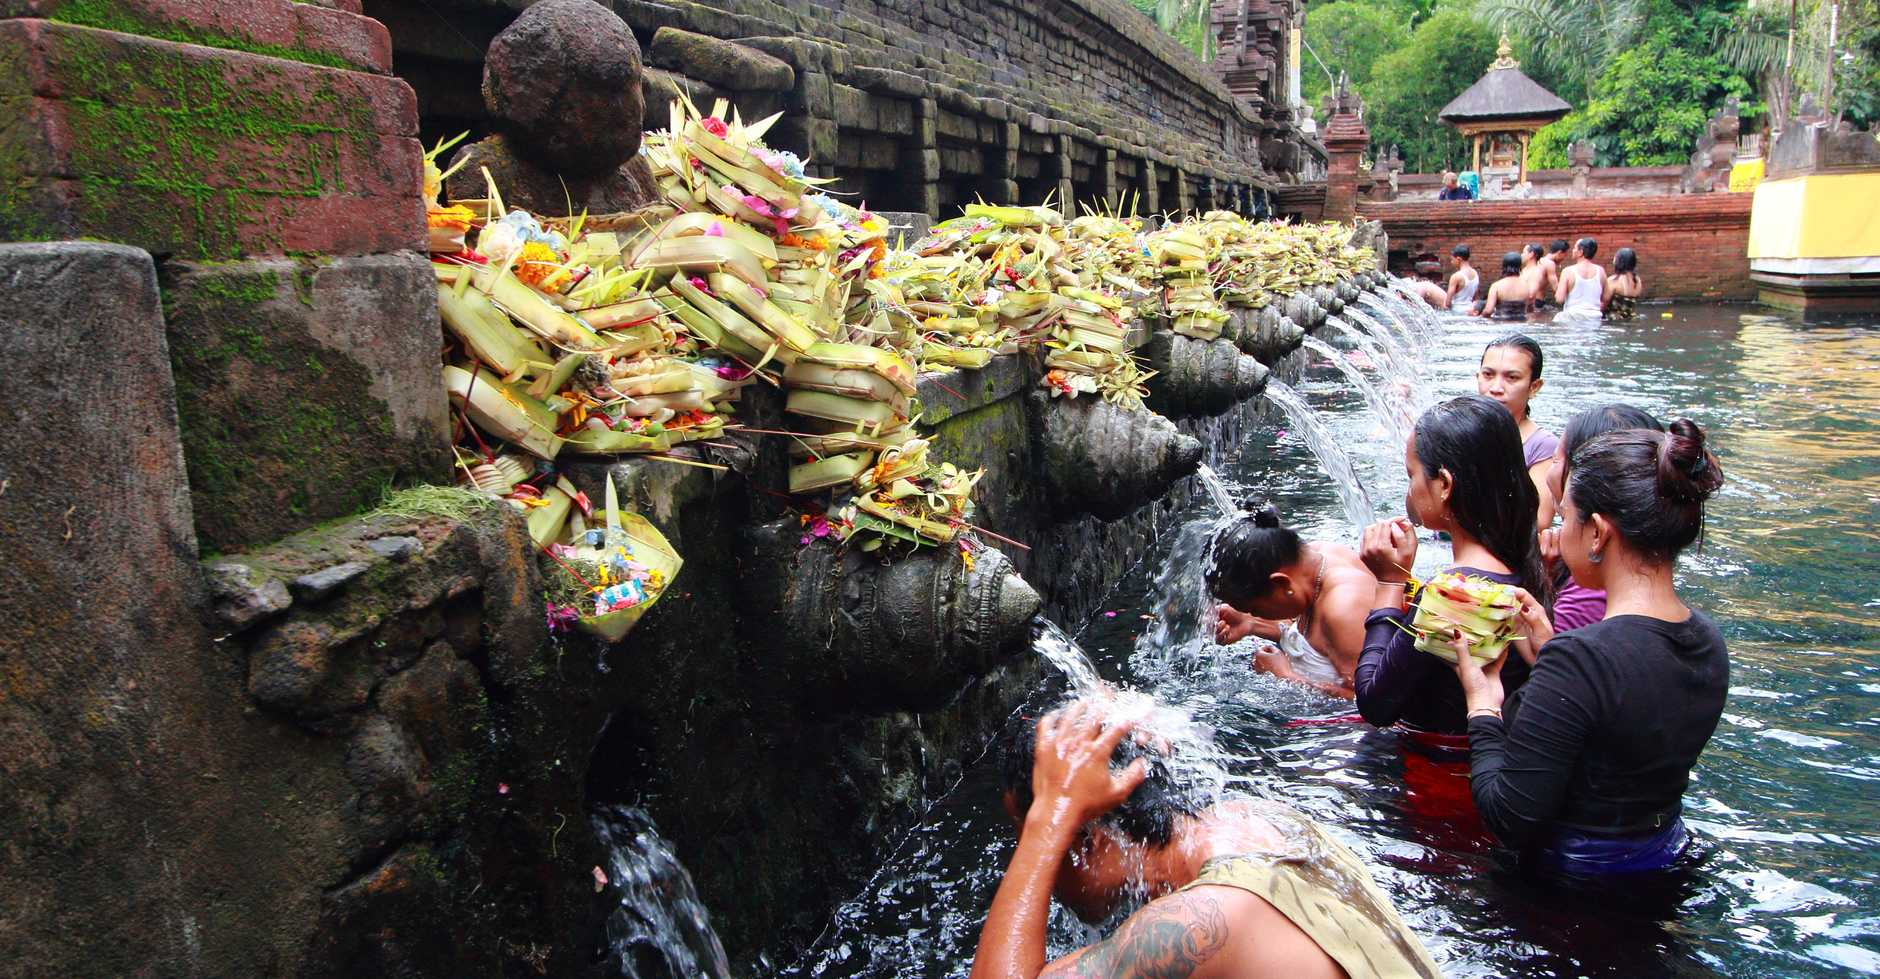 Worshippers make an offering at the Tirta Empul Temple in Bali and, below, the The Wyndham Jivva Resort reception.